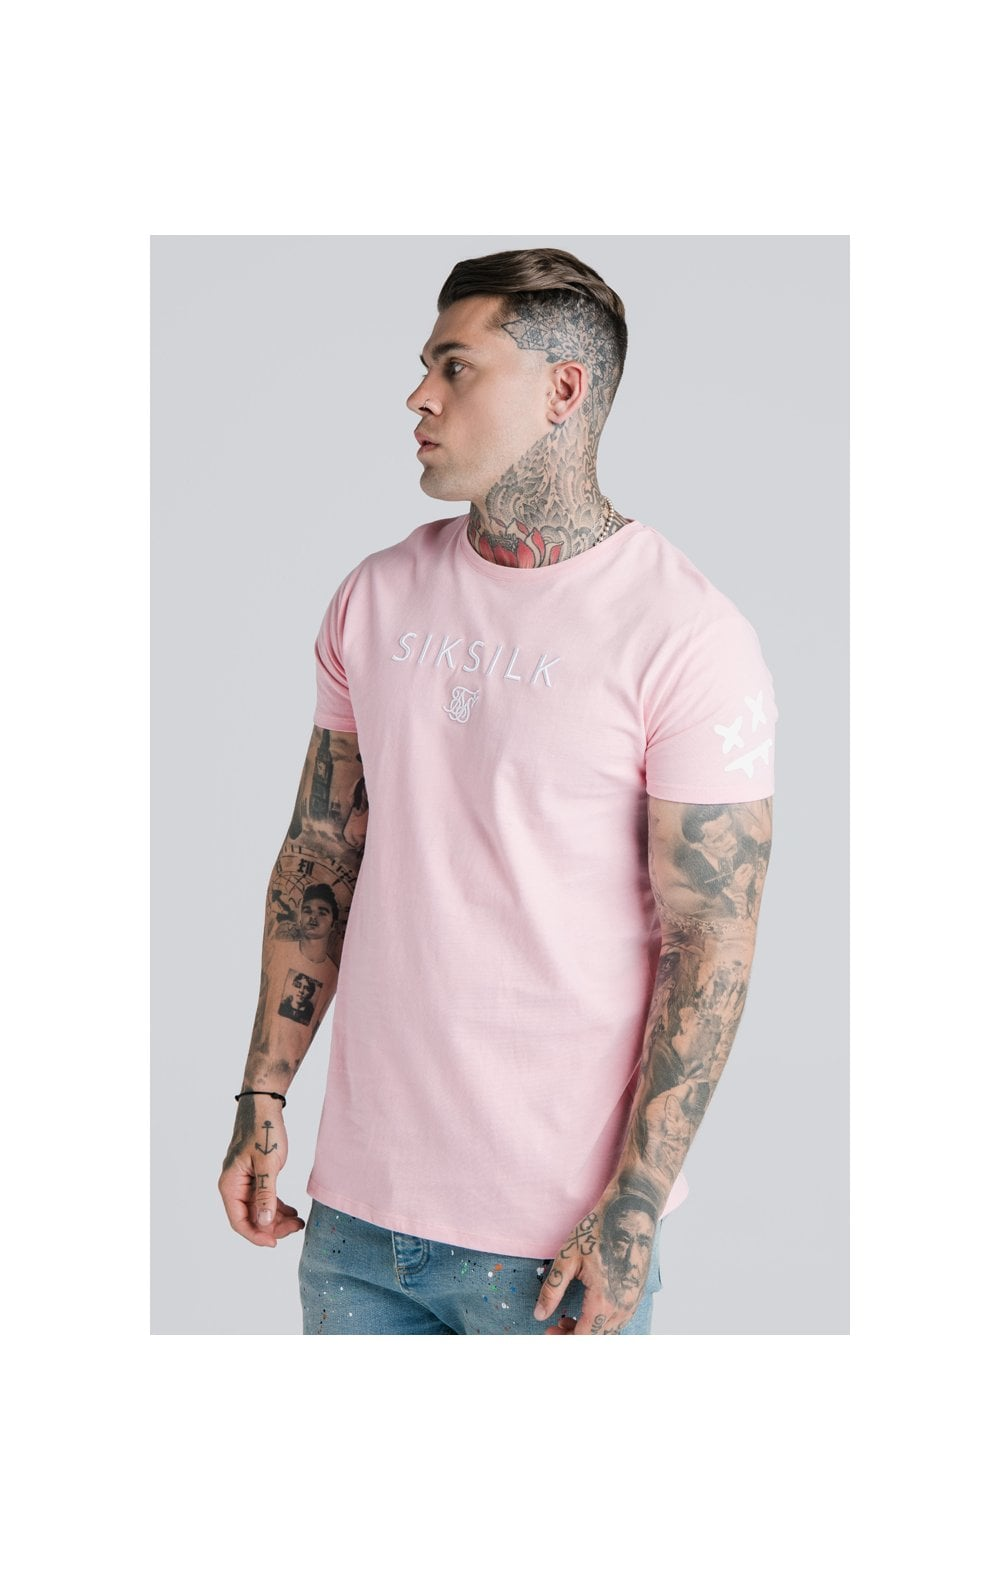 Load image into Gallery viewer, SikSilk X Steve Aoki S/S Box Tee – Pink (1)